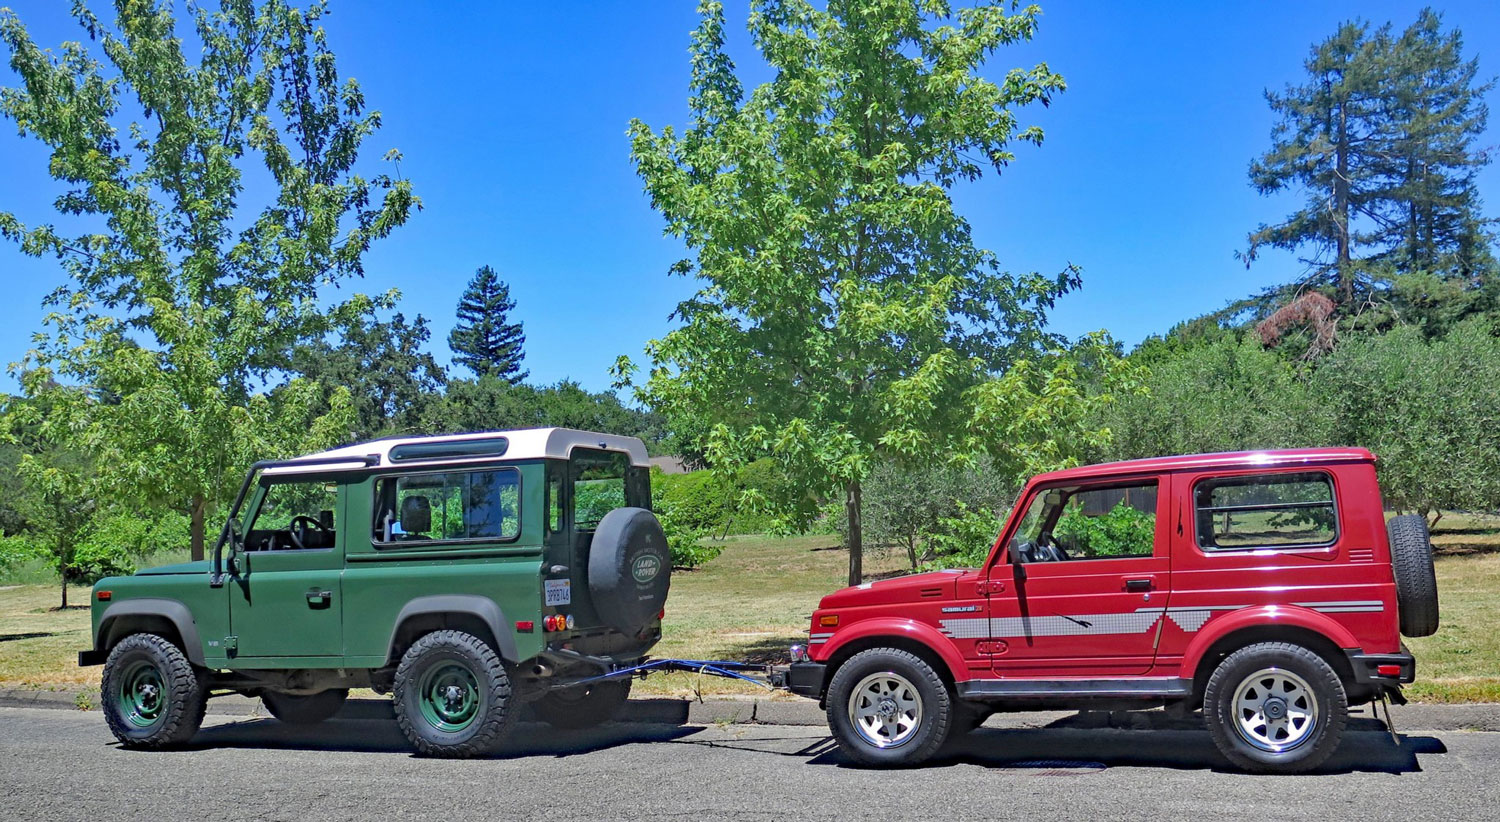 The Samurai is dwarfed by a Defender 90, even though its wheelbase is only a foot longer.